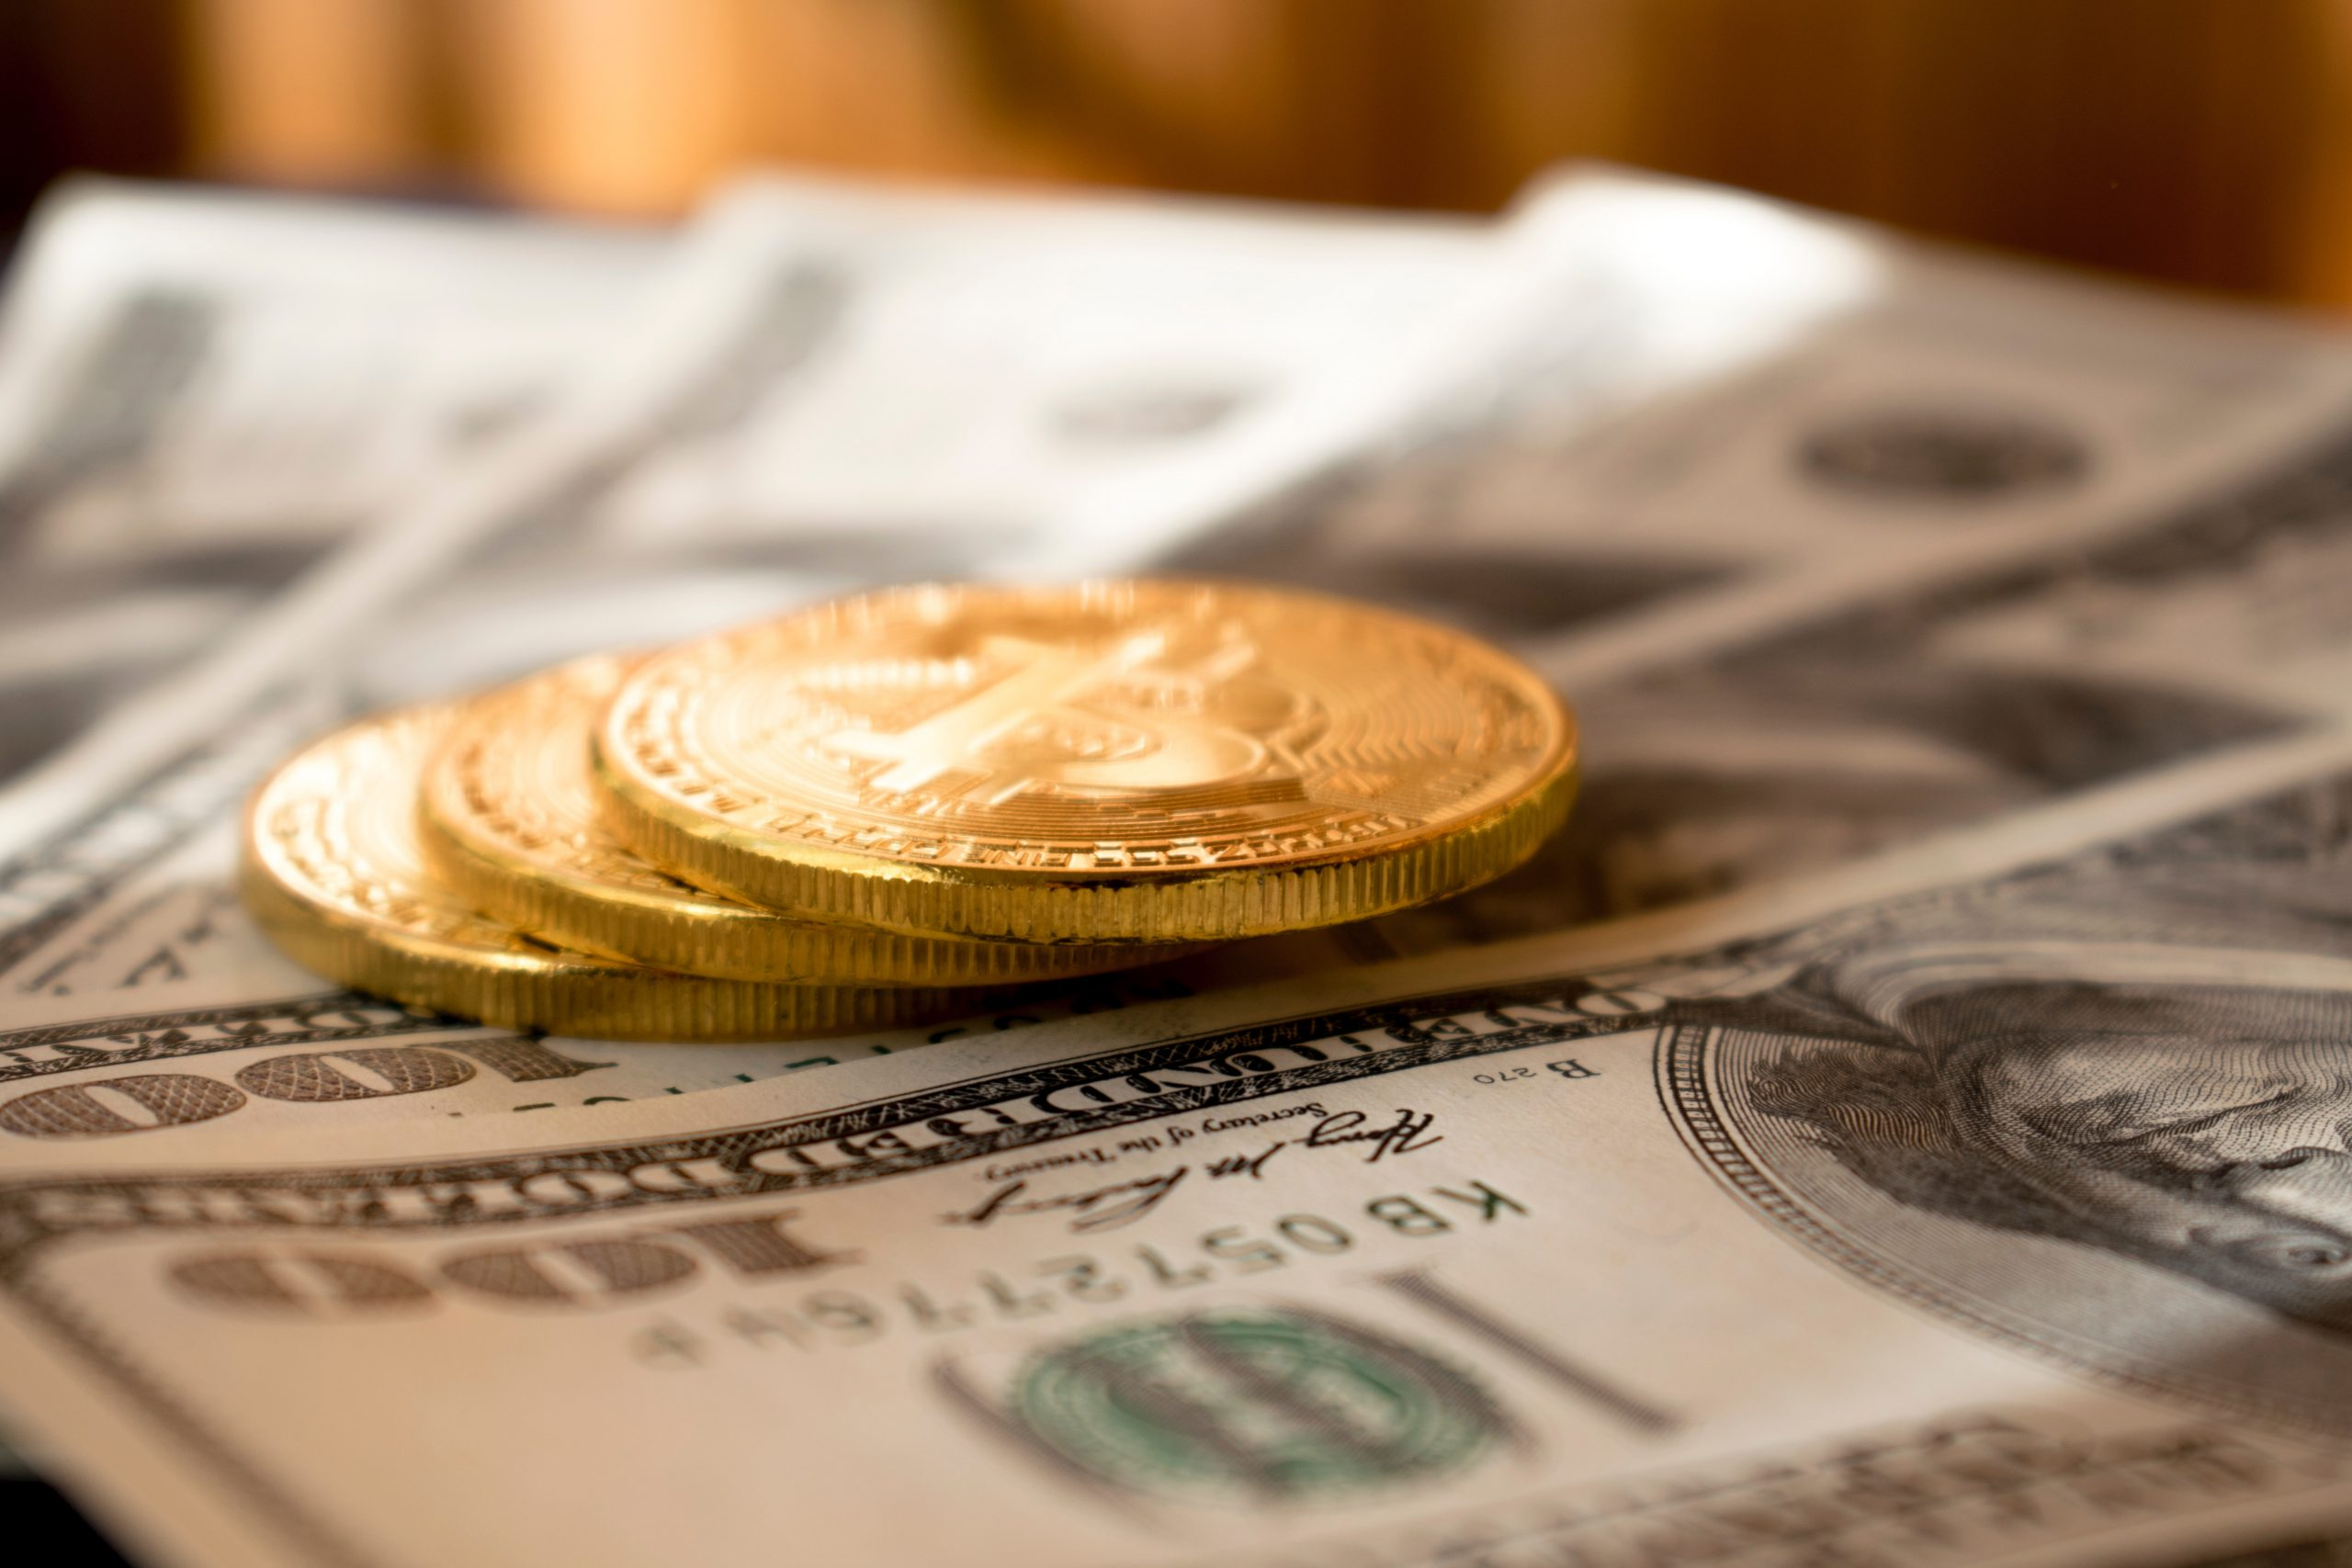 three round gold-colored coins on 100 US dollar banknotes